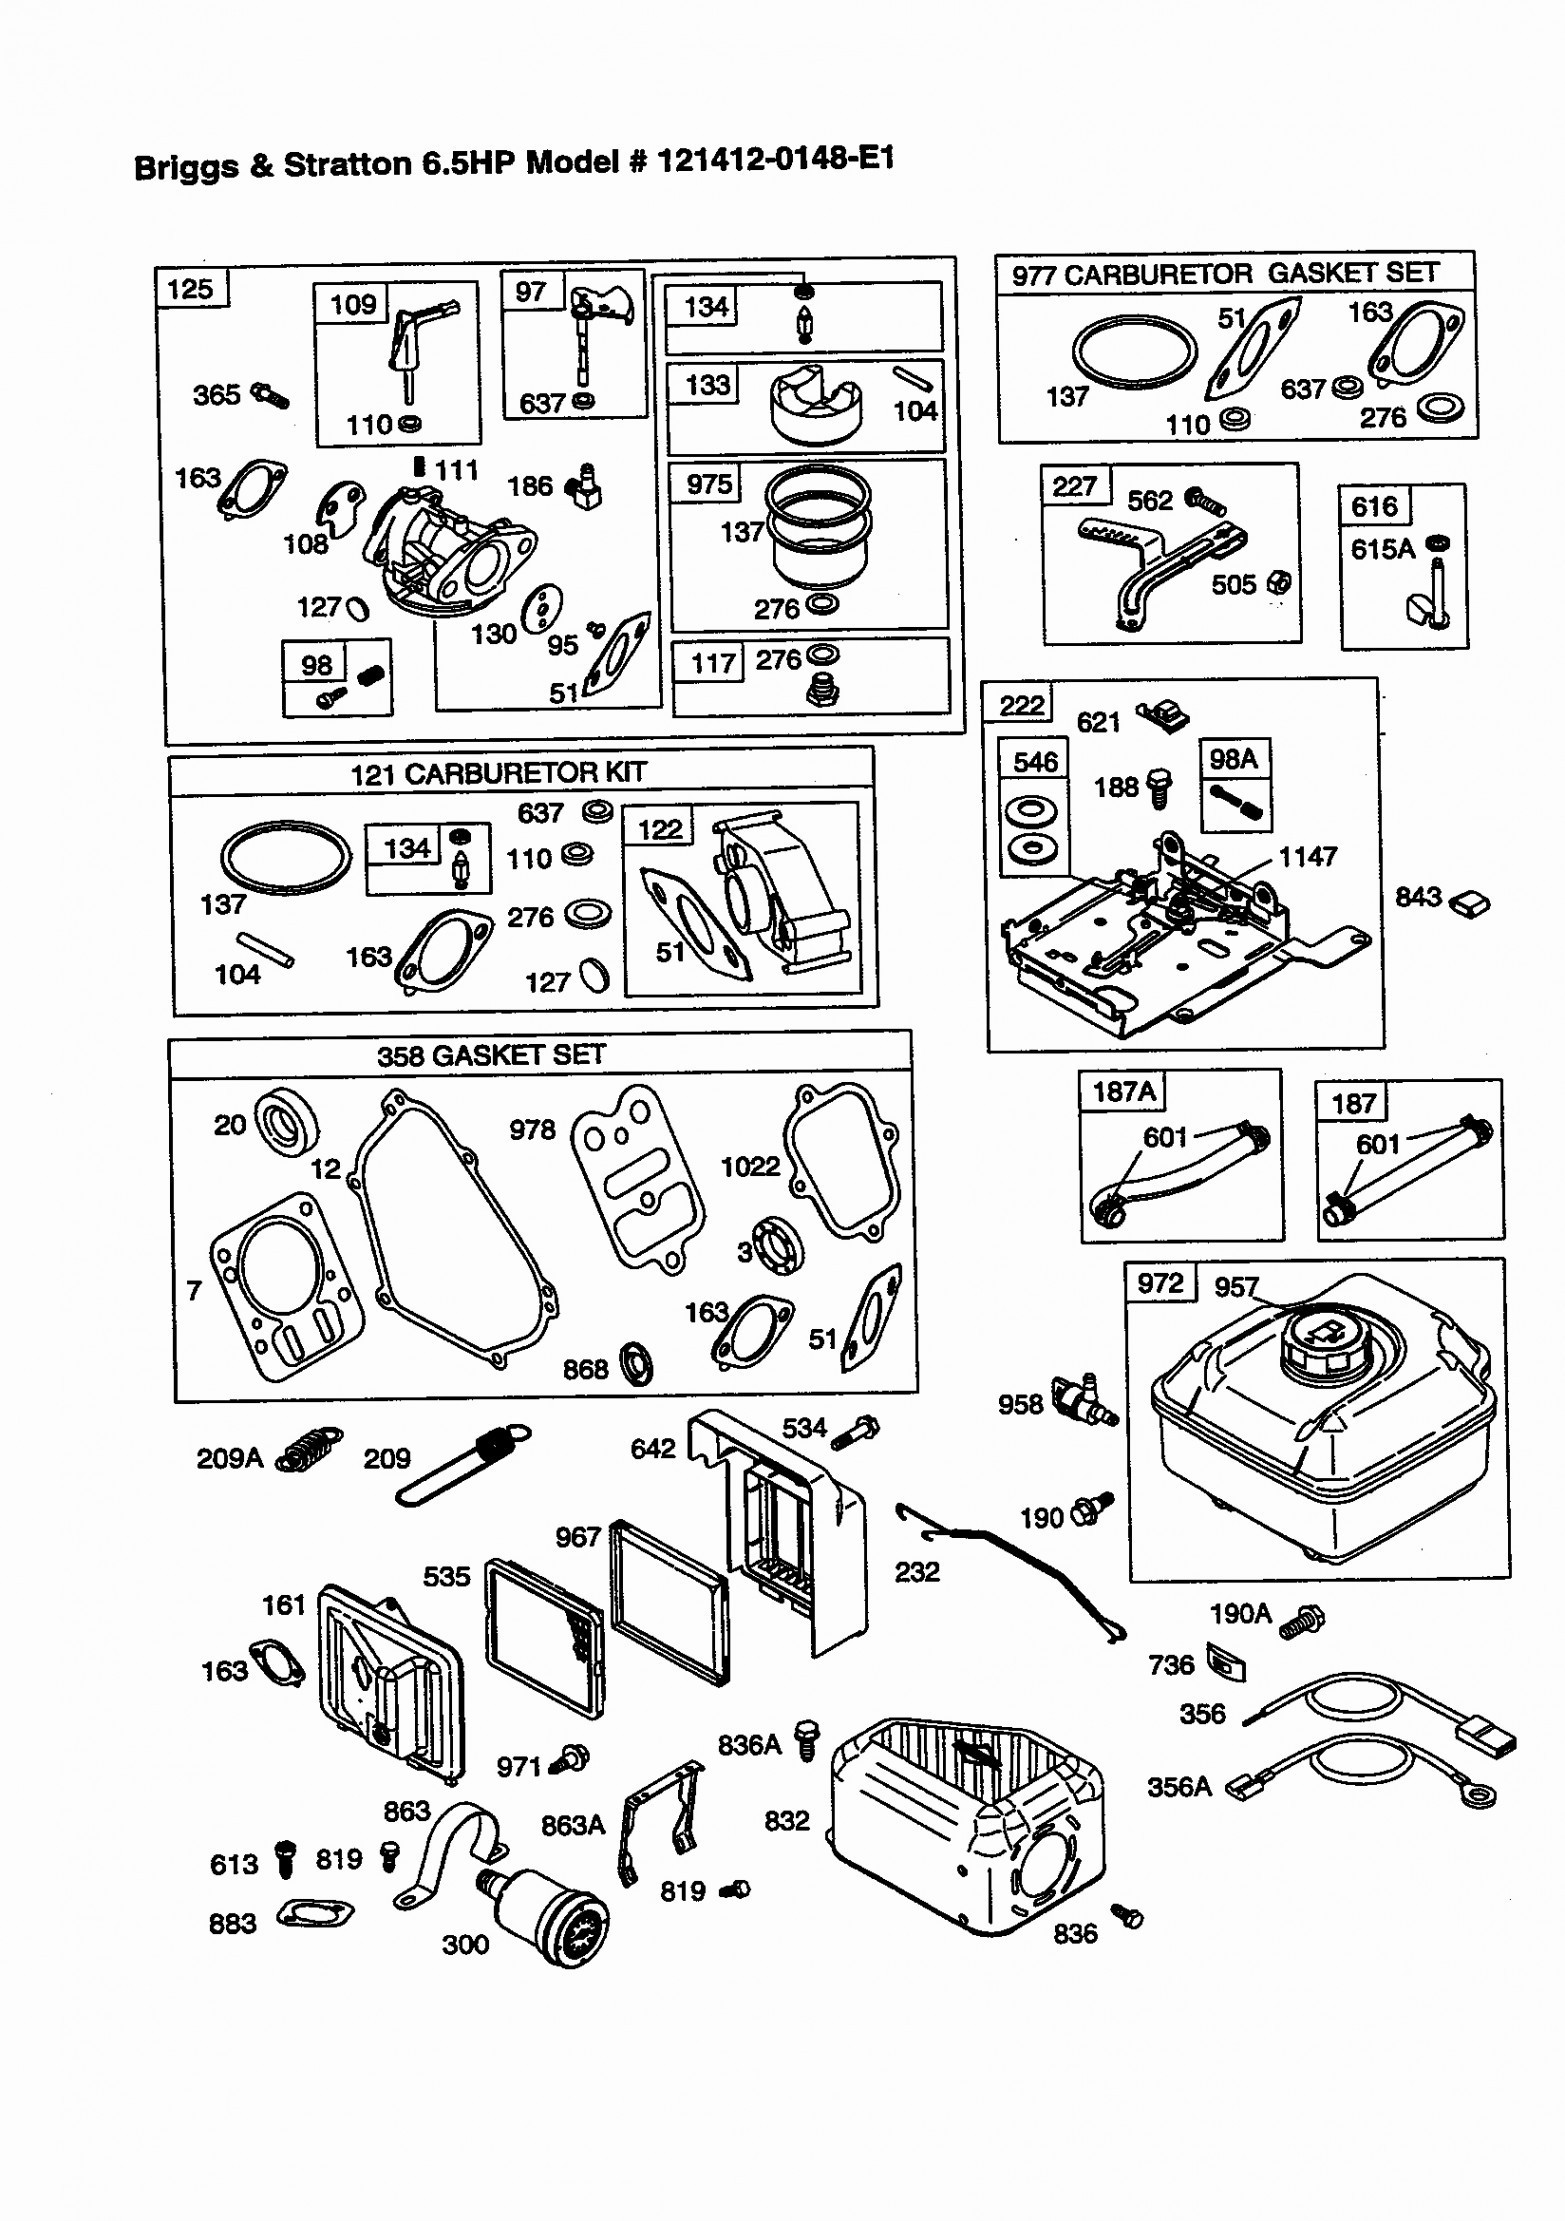 Briggs and Stratton 11 Hp Engine Diagram 50 Briggs and Stratton Throttle Spring Diagram Gy8g – Arichikafo Of Briggs and Stratton 11 Hp Engine Diagram